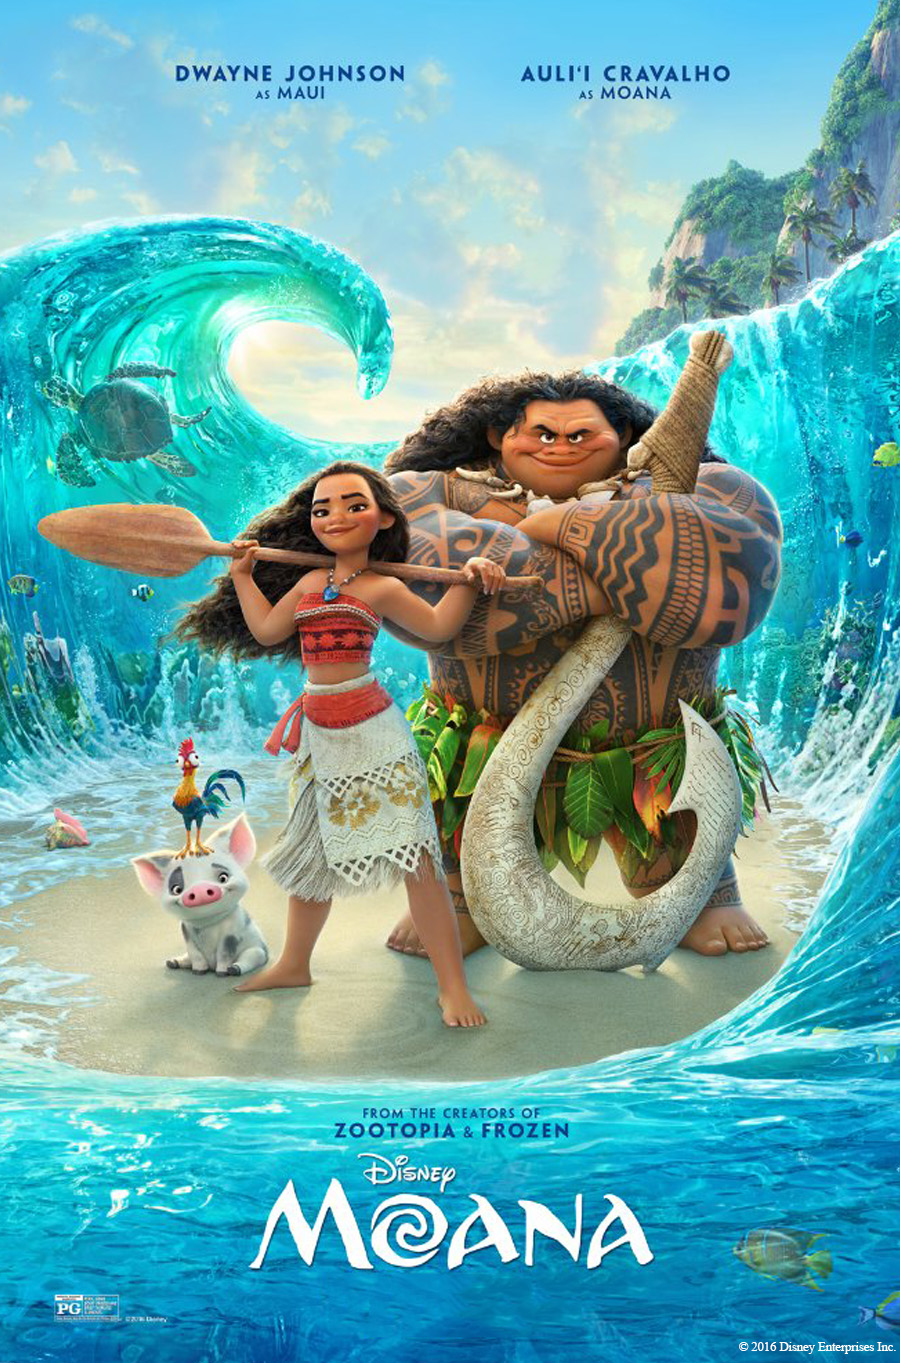 Moana movie poster.